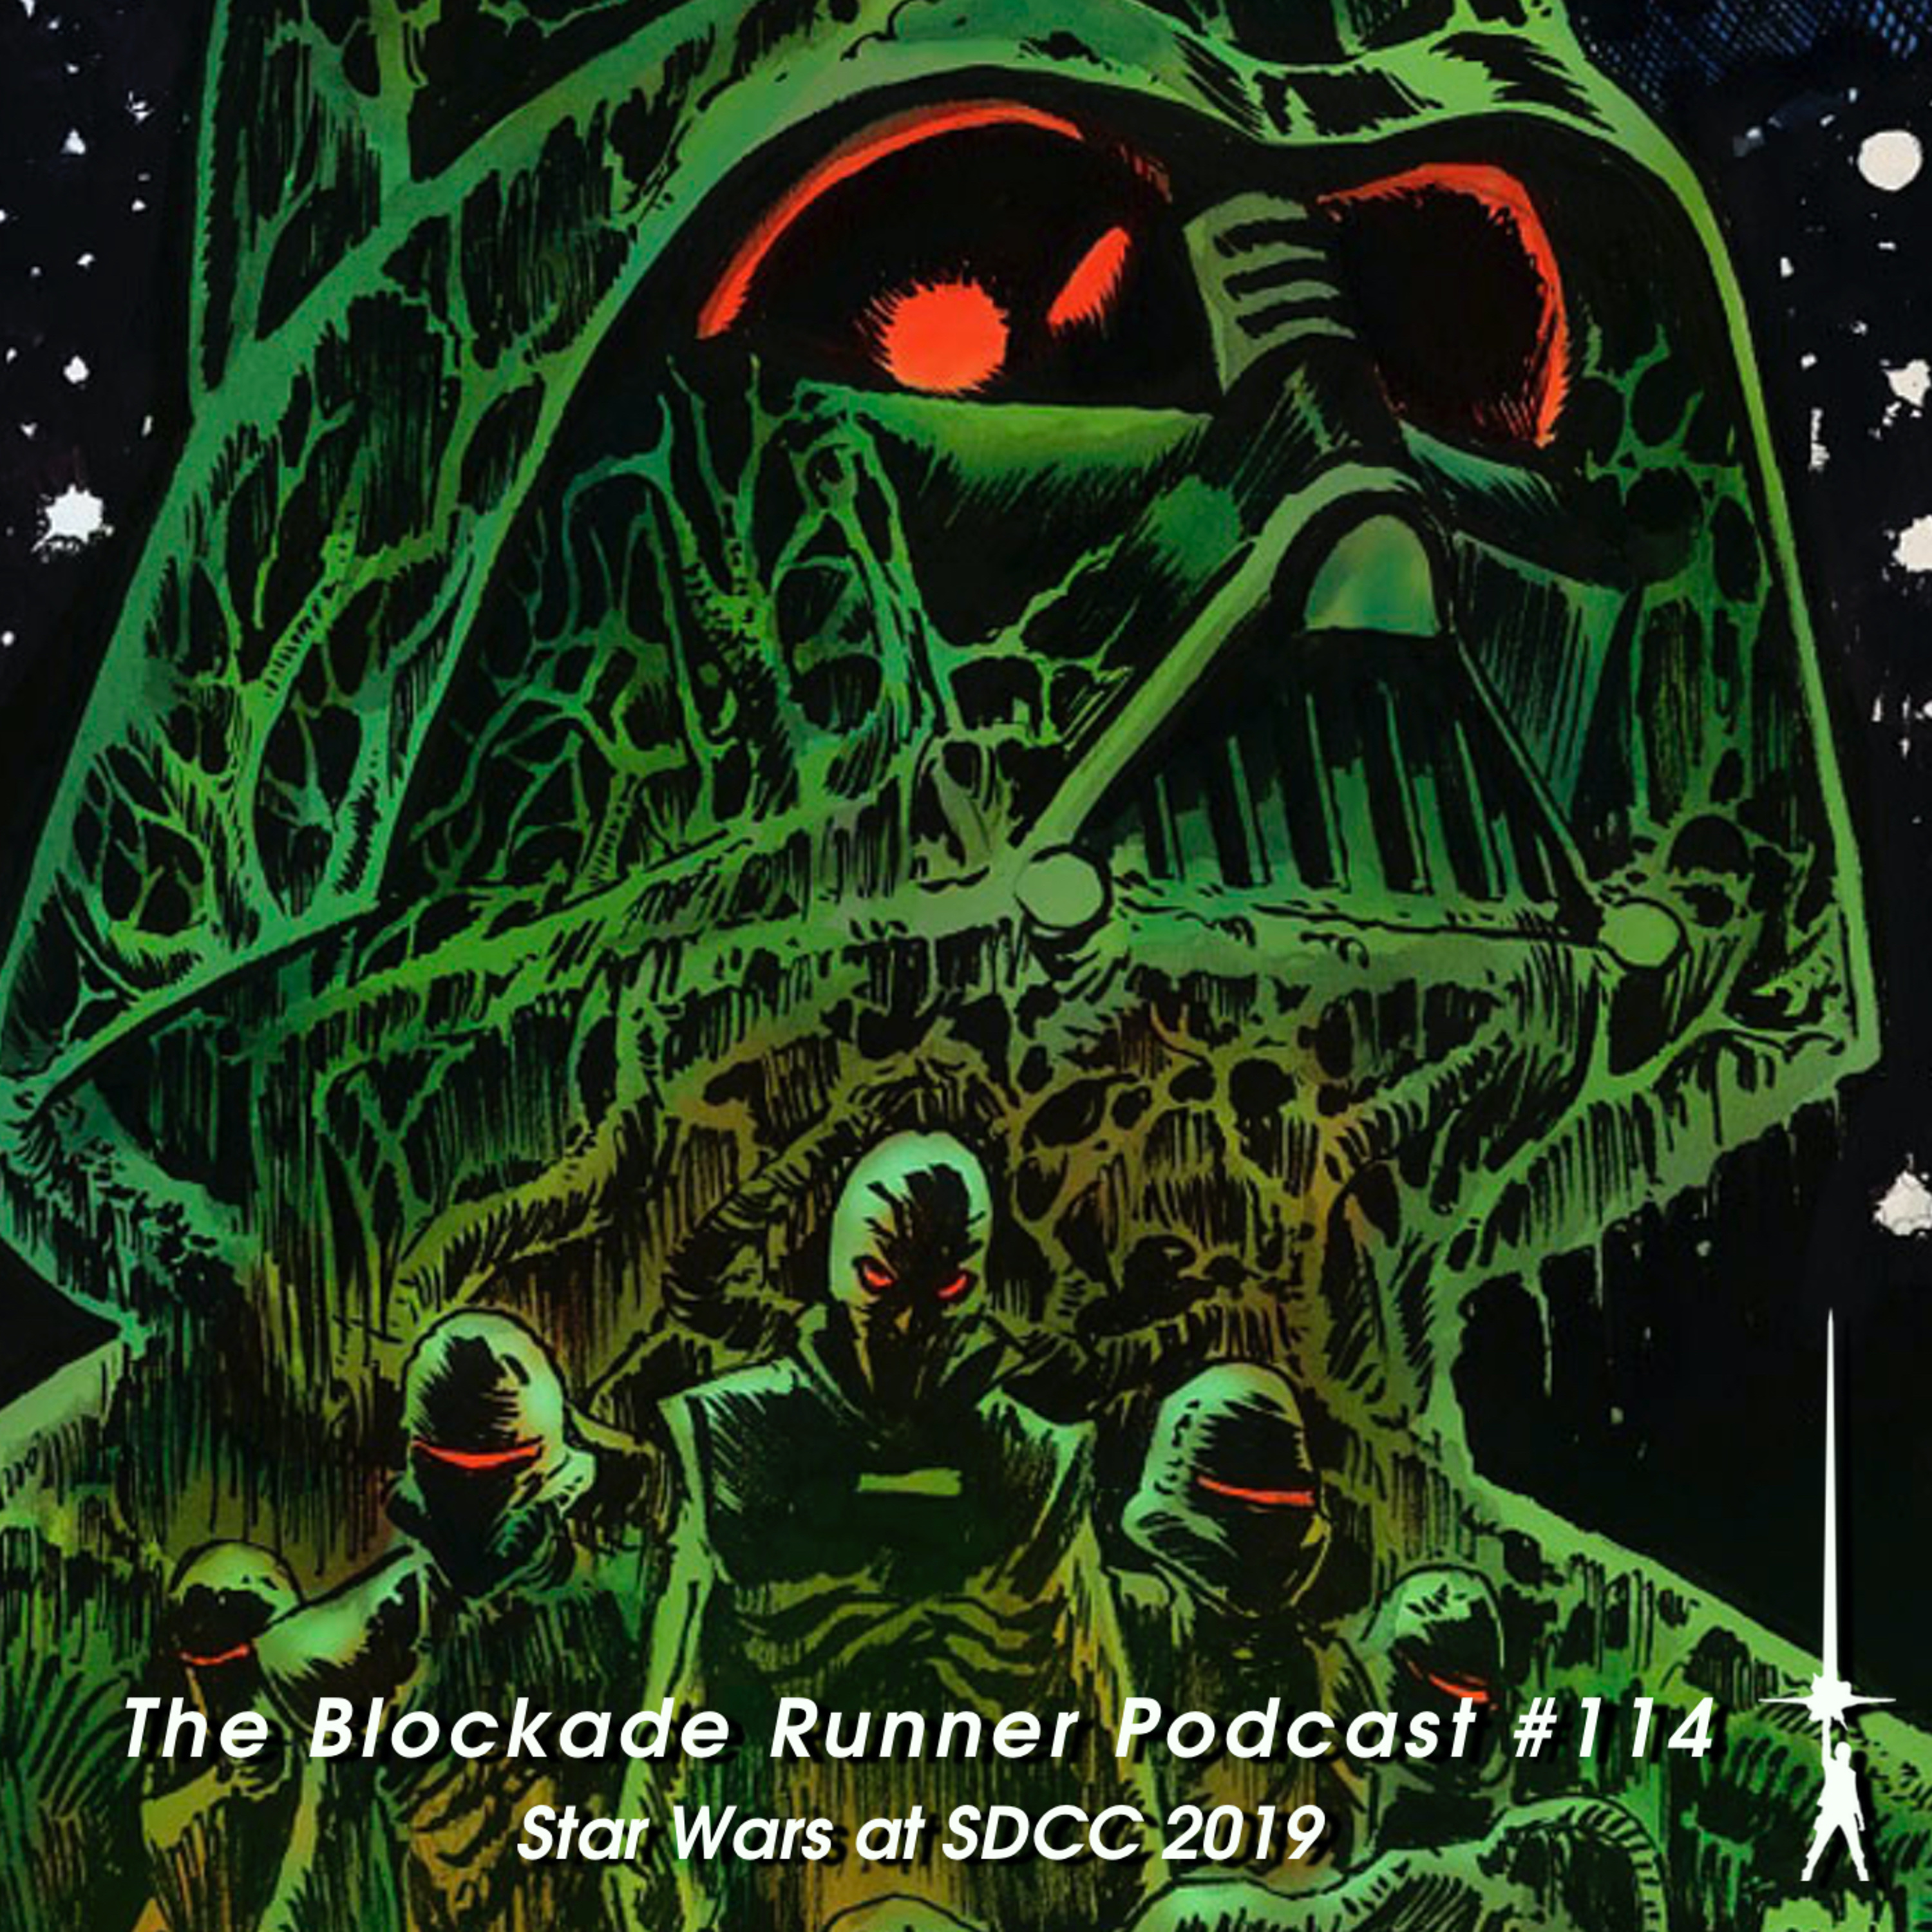 Star Wars at SDCC 2019 - The Blockade Runner Podcast #114